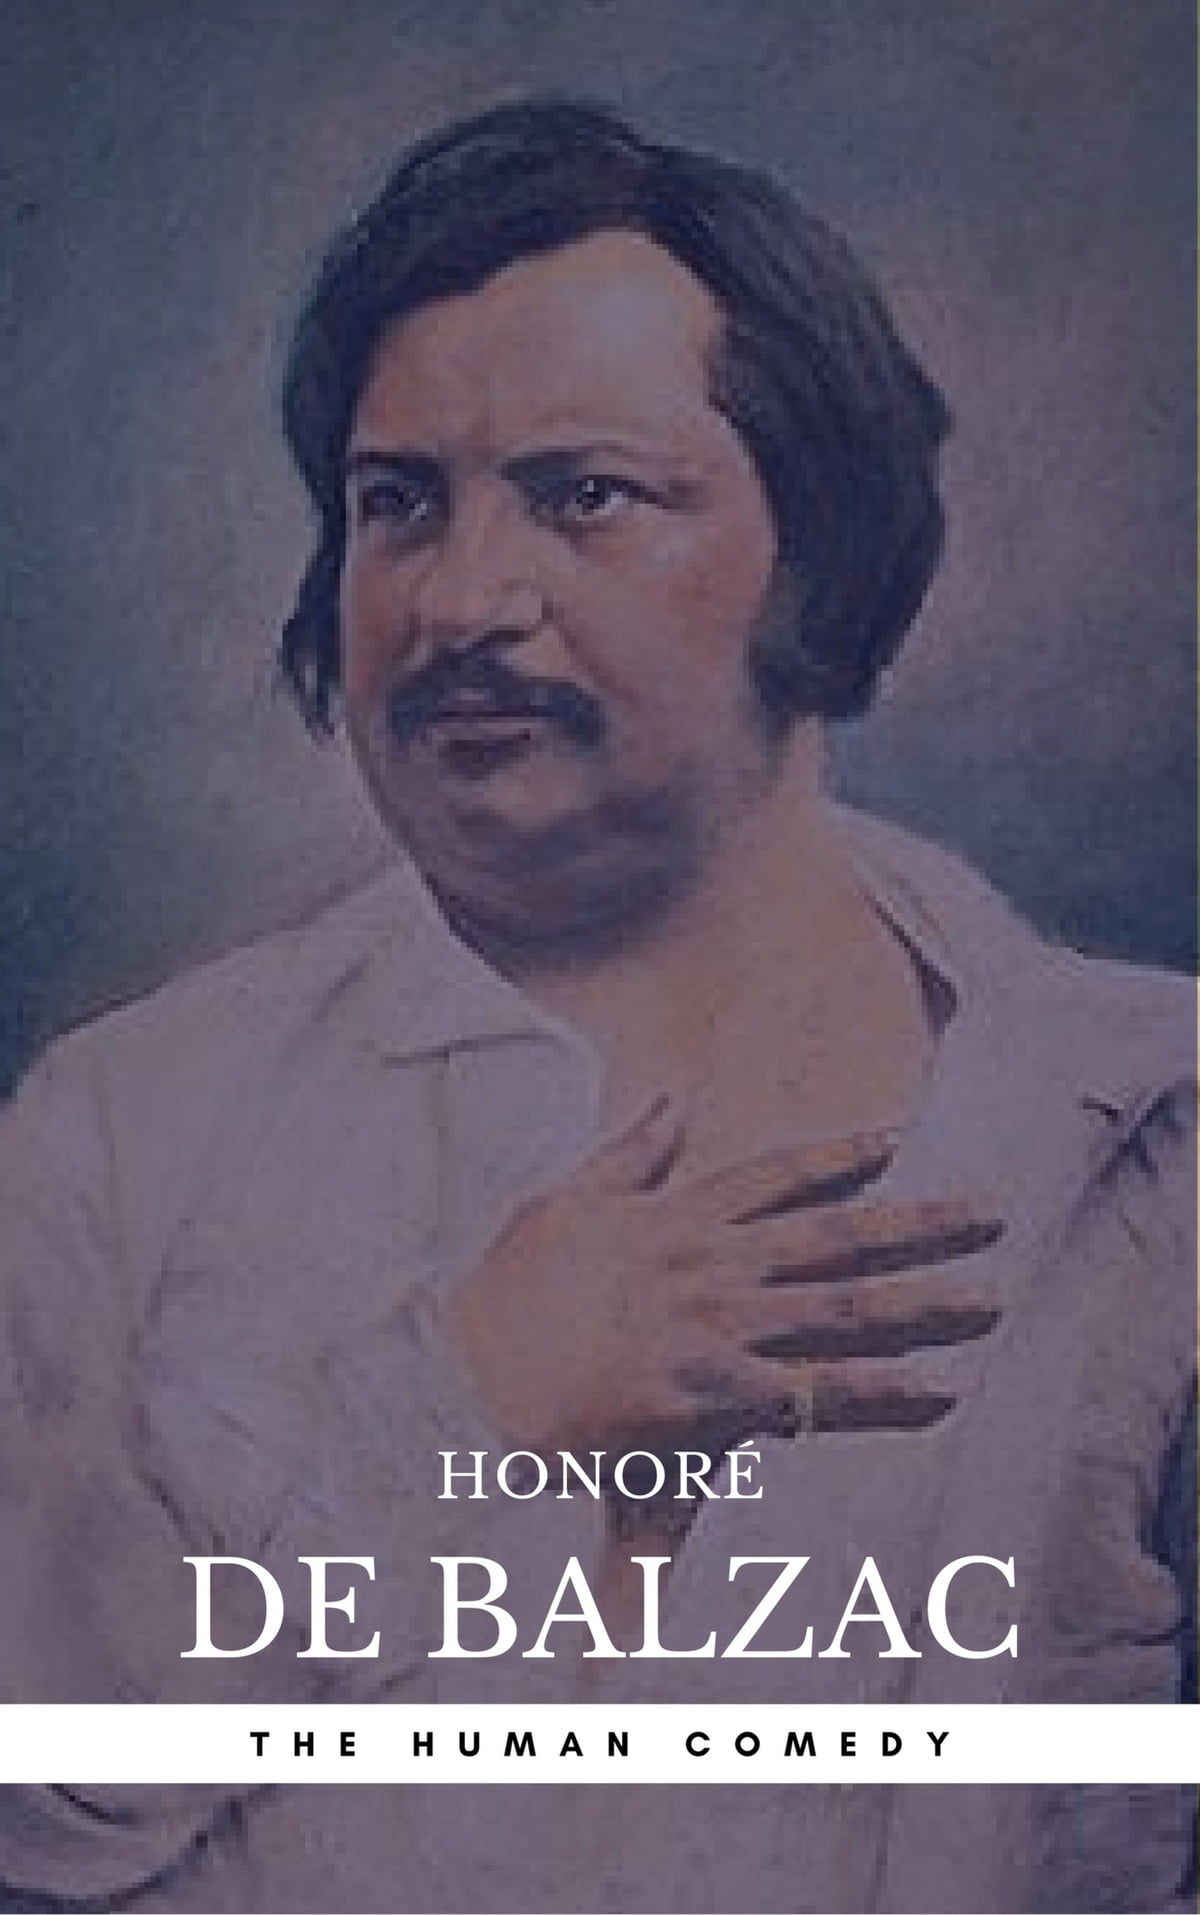 Honore de Balzac: works and life of the great writer